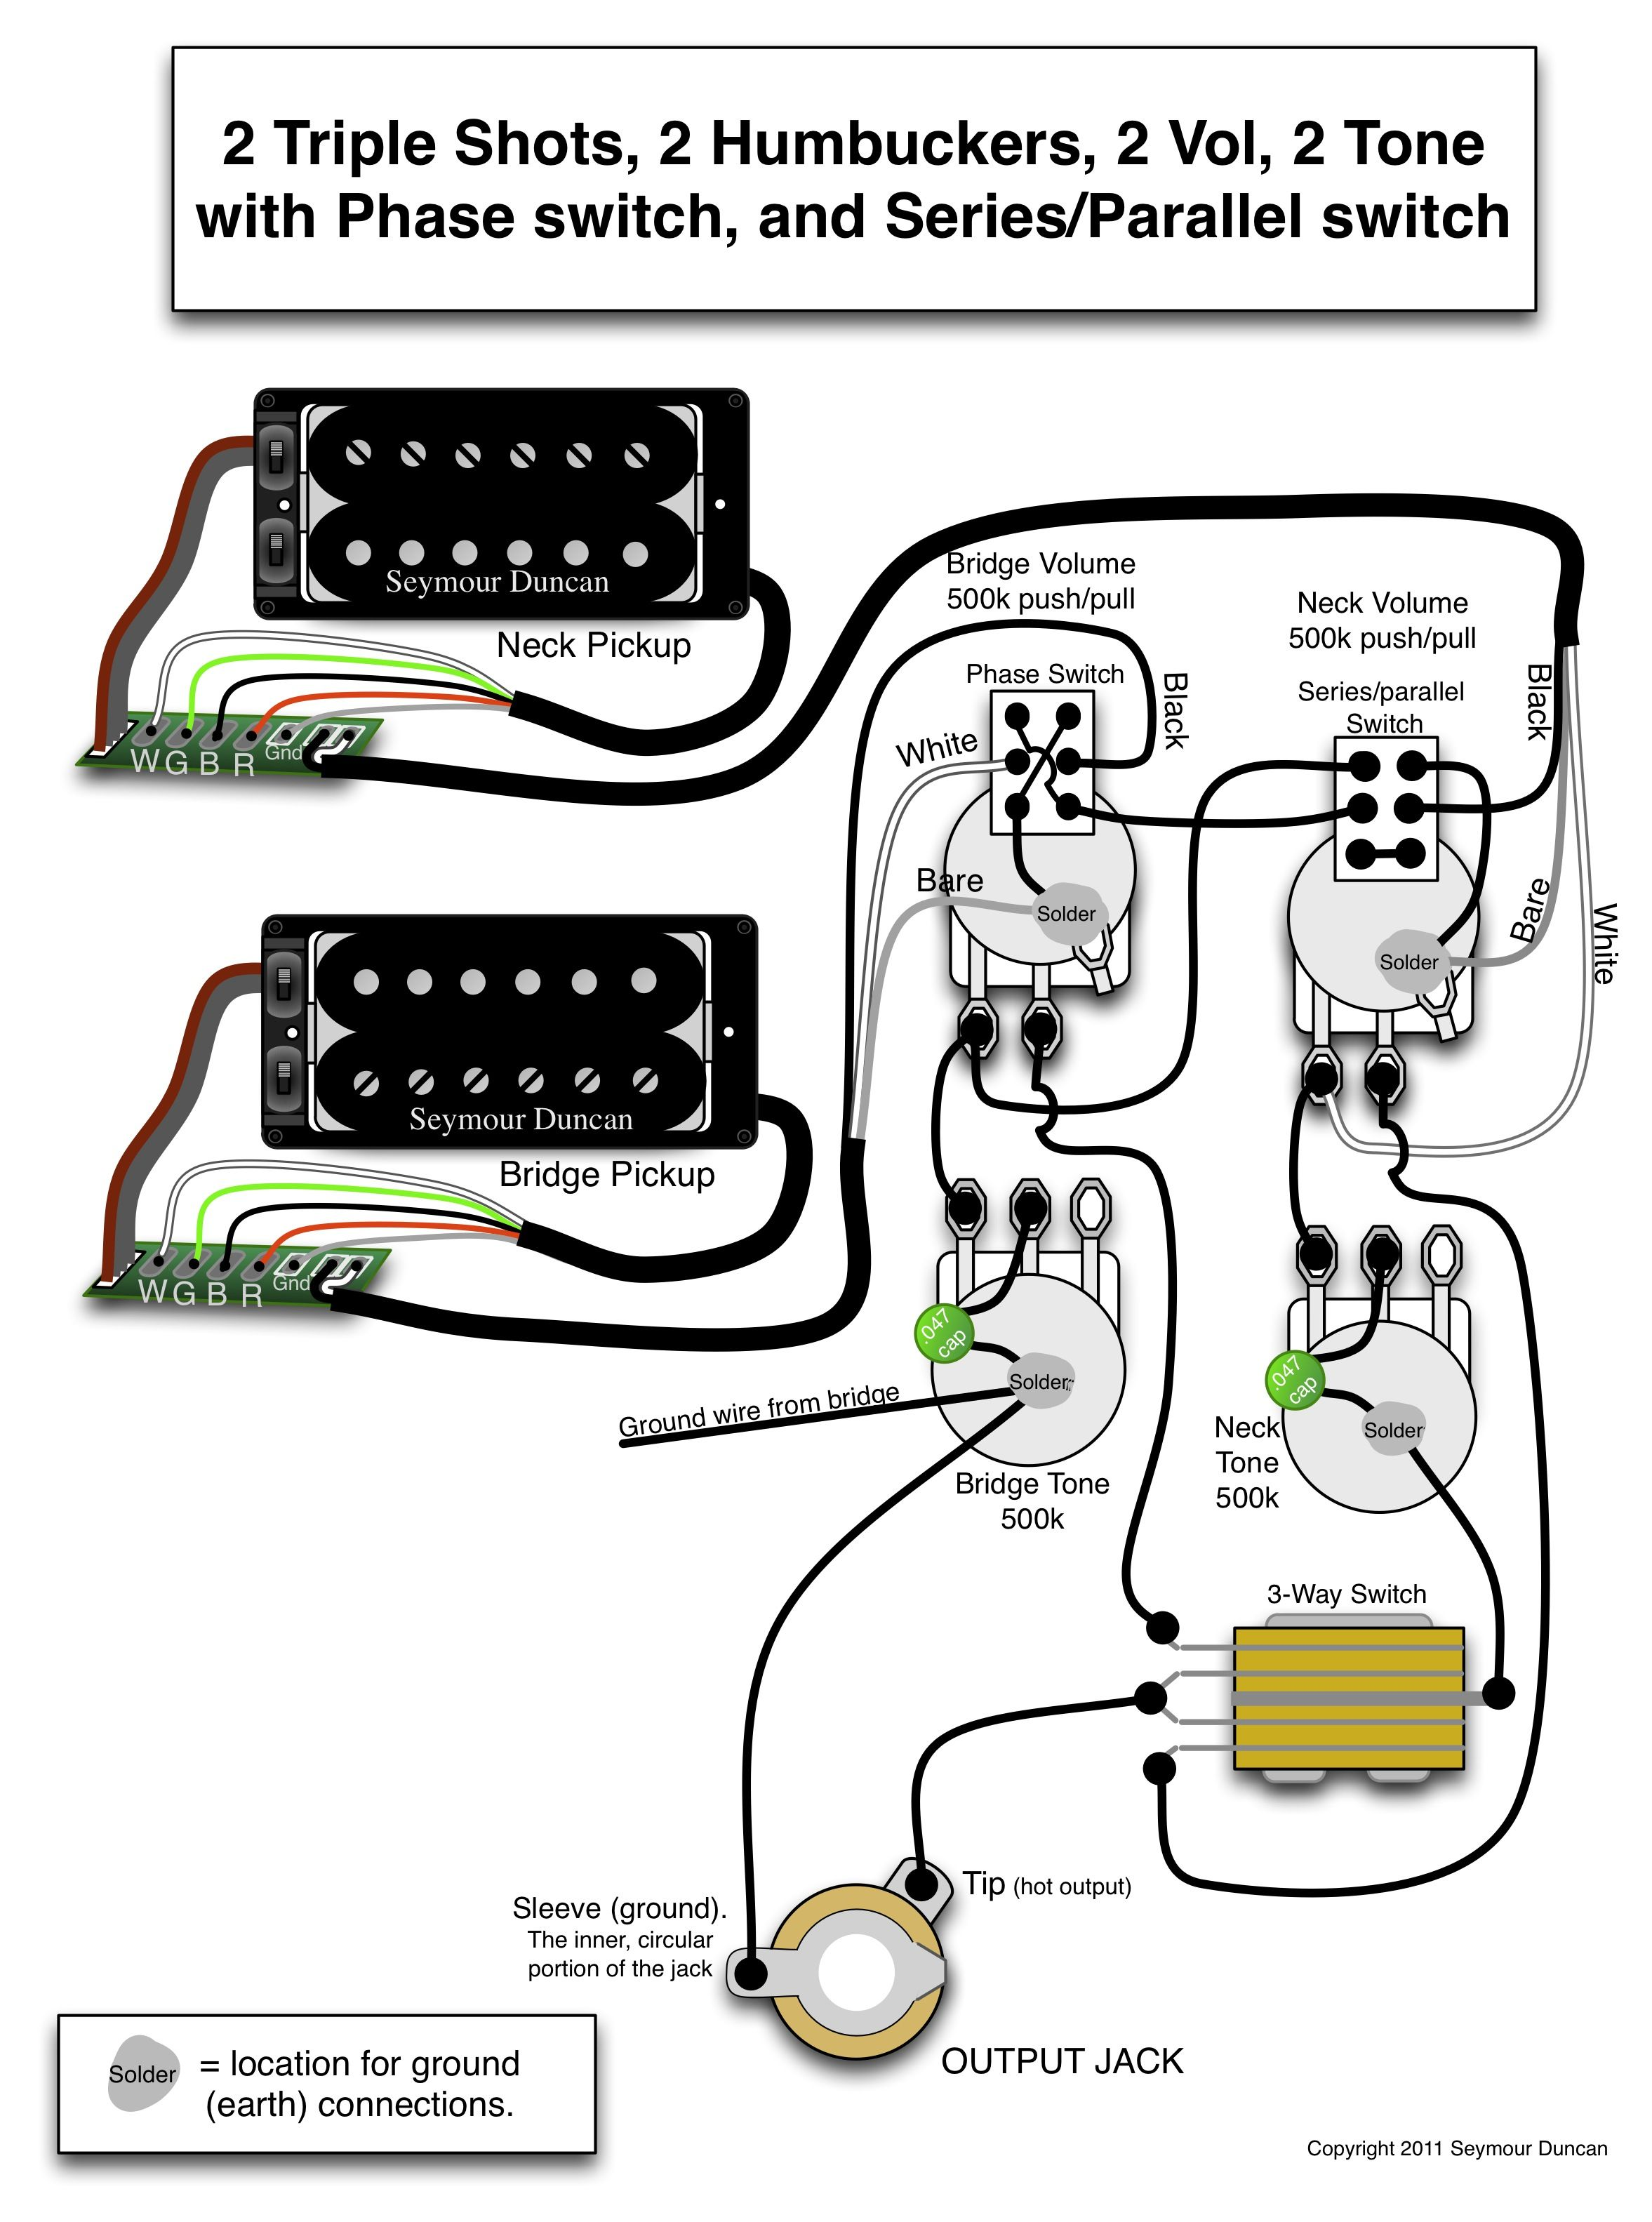 14dc4408abcf3c075a00cd280c1ea7ec seymour duncan wiring diagram 2 triple shots, 2 humbuckers, 2 p rails wiring diagram at panicattacktreatment.co